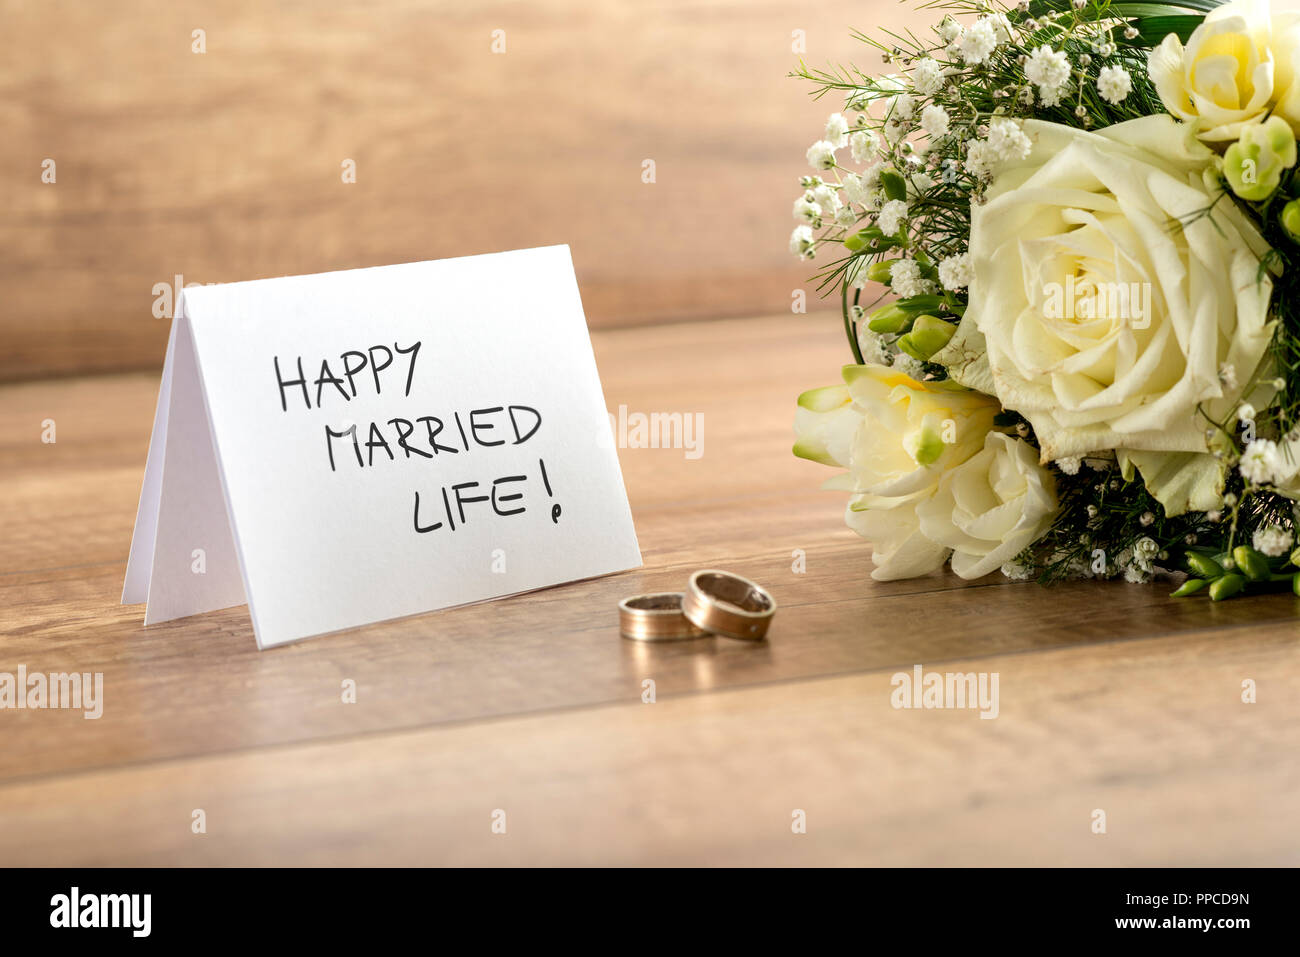 Close up of Beautiful Bride Bouquet of  Fresh Flowers, Pair of Rings and Happy Married Life Card for Newlyweds on Top of Wooden Table. - Stock Image